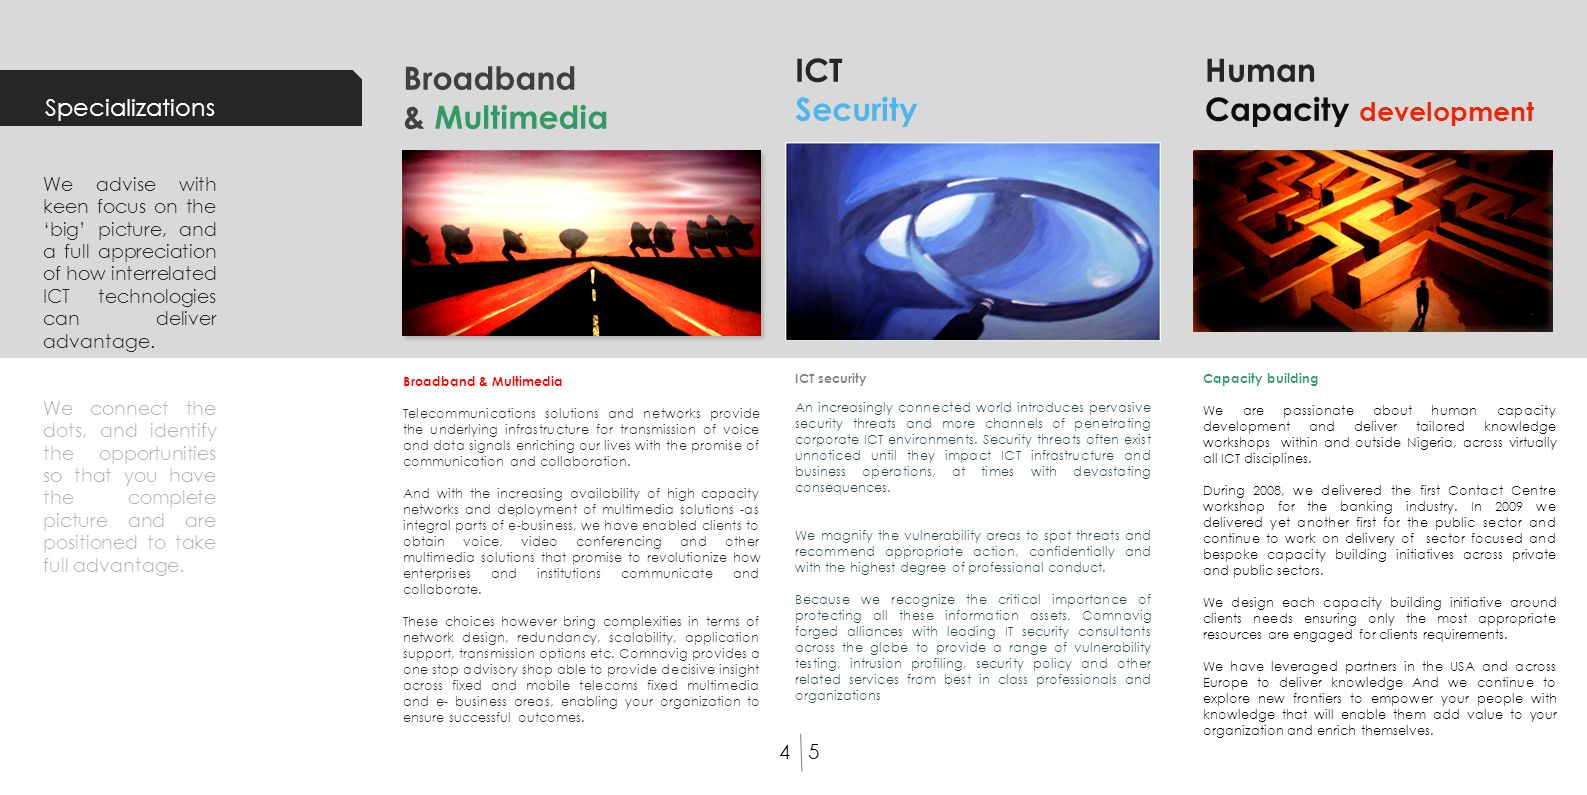 Broadband & Multimedia Telecommunications solutions and networks provide the underlying infrastructure for transmission of voice and data signals enri